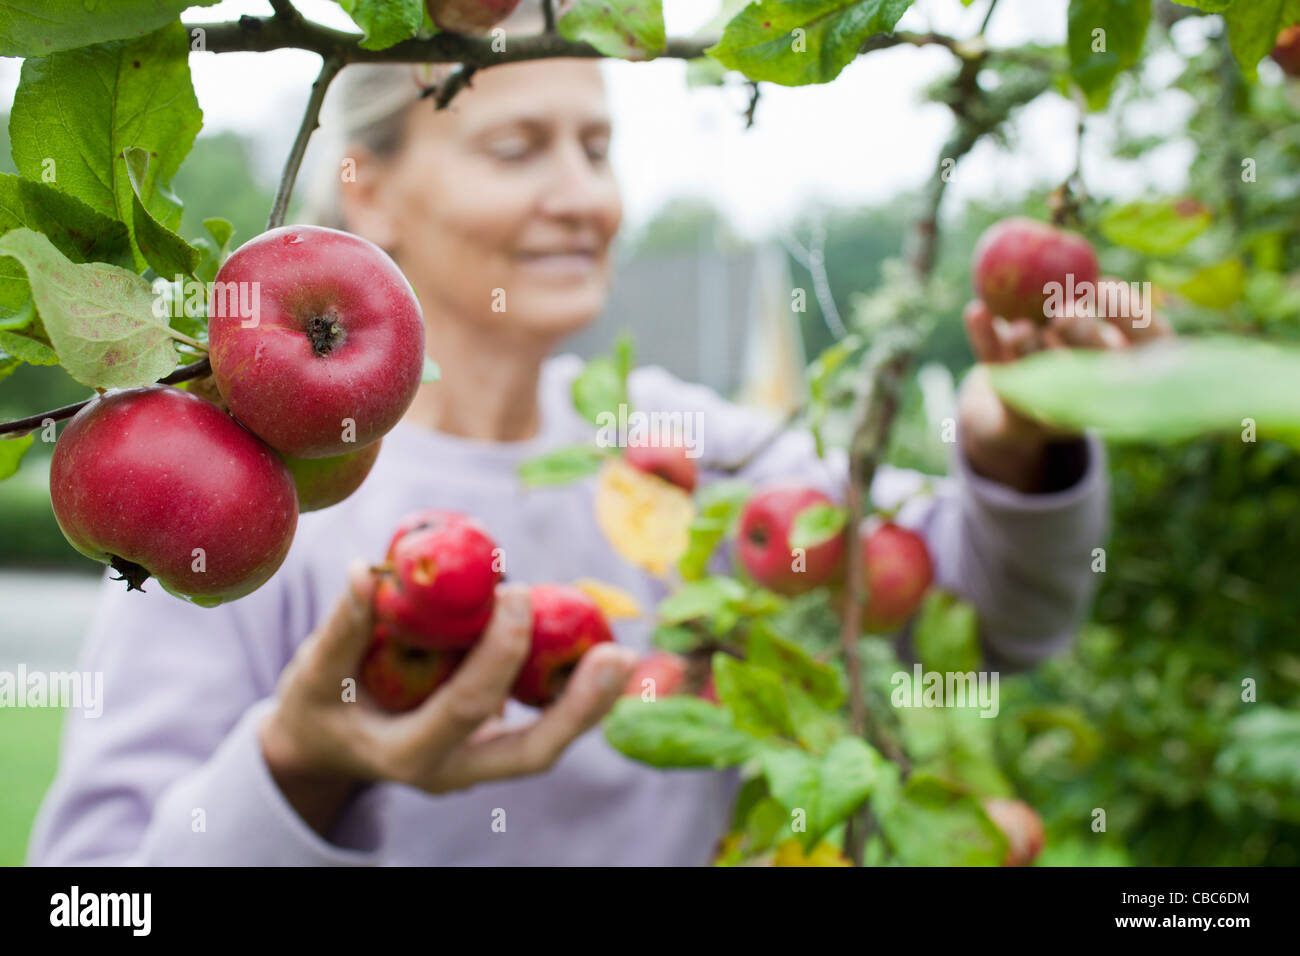 Older woman picking fruit from tree - Stock Image